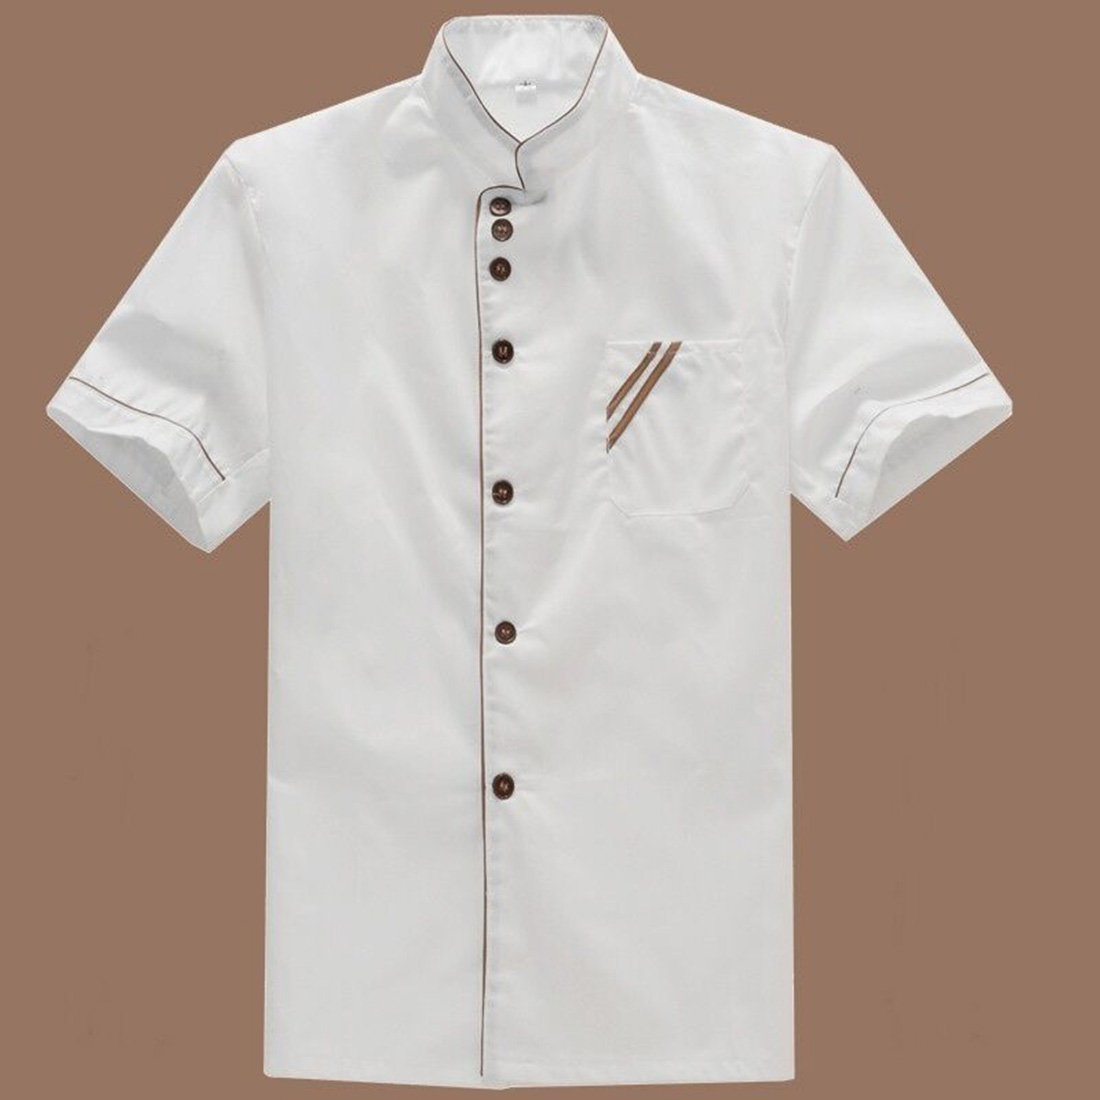 Kitchen Chef Jacket Lightweight Cooker Uniform Washable Restaurant Catering Short Sleeve Resin Button White Summer Bakery Solid